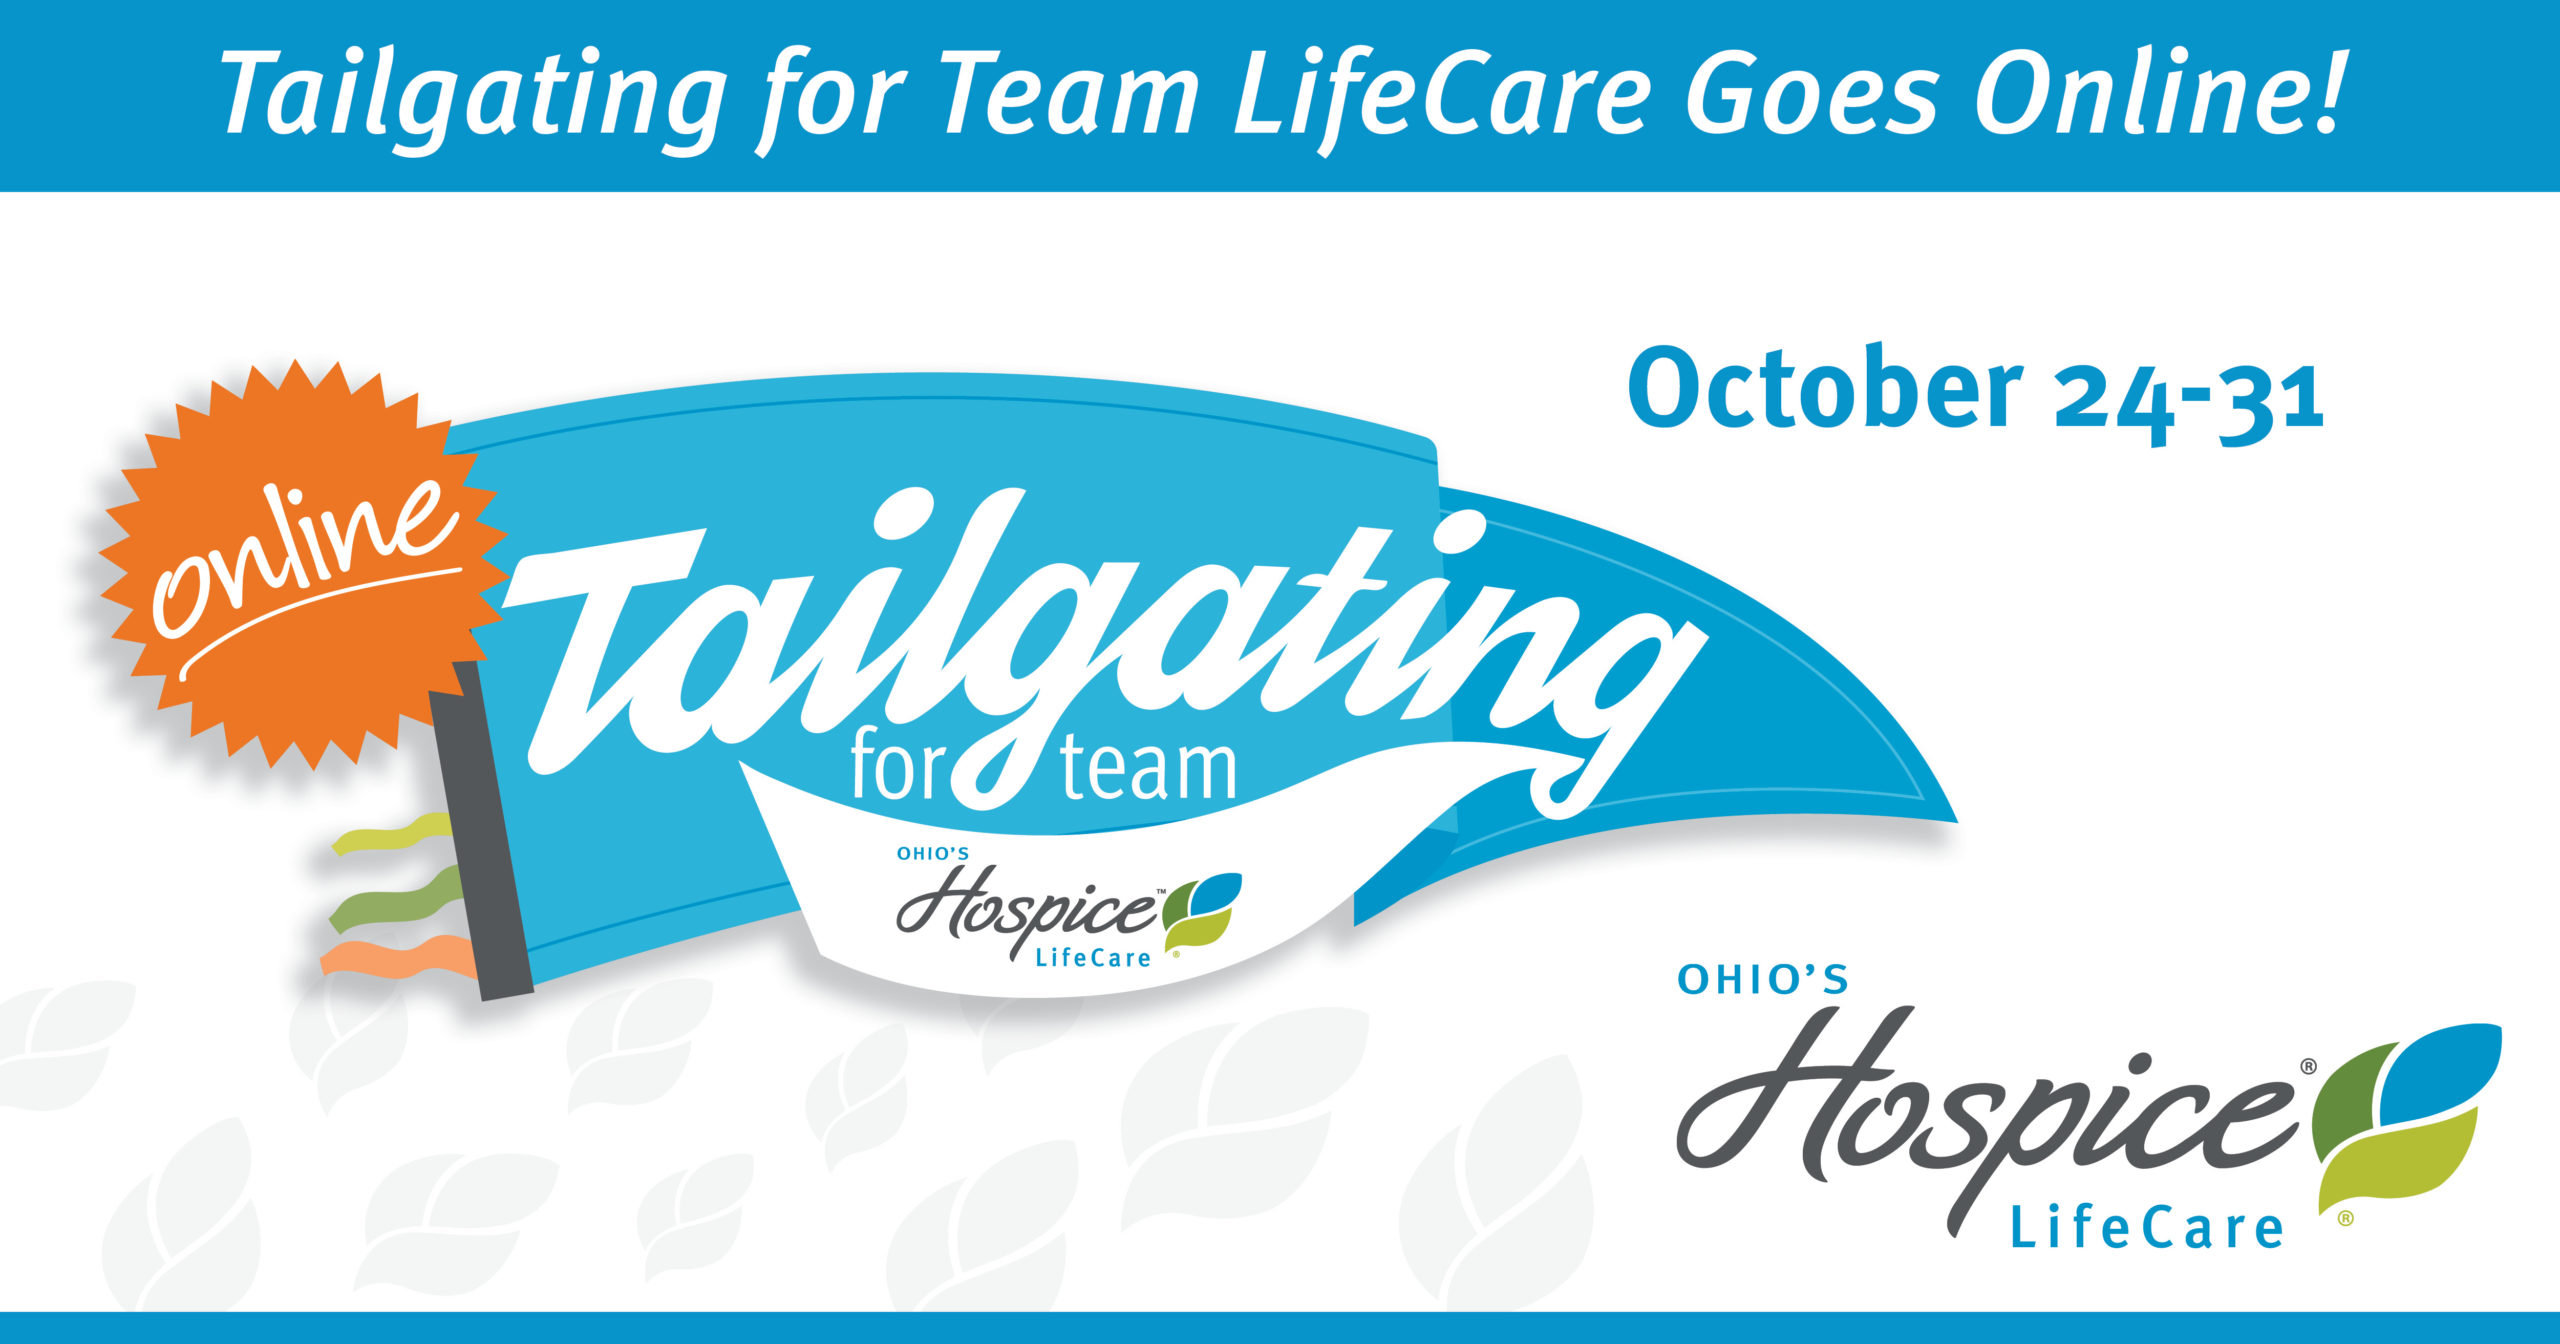 Tailgating For Team LifeCare